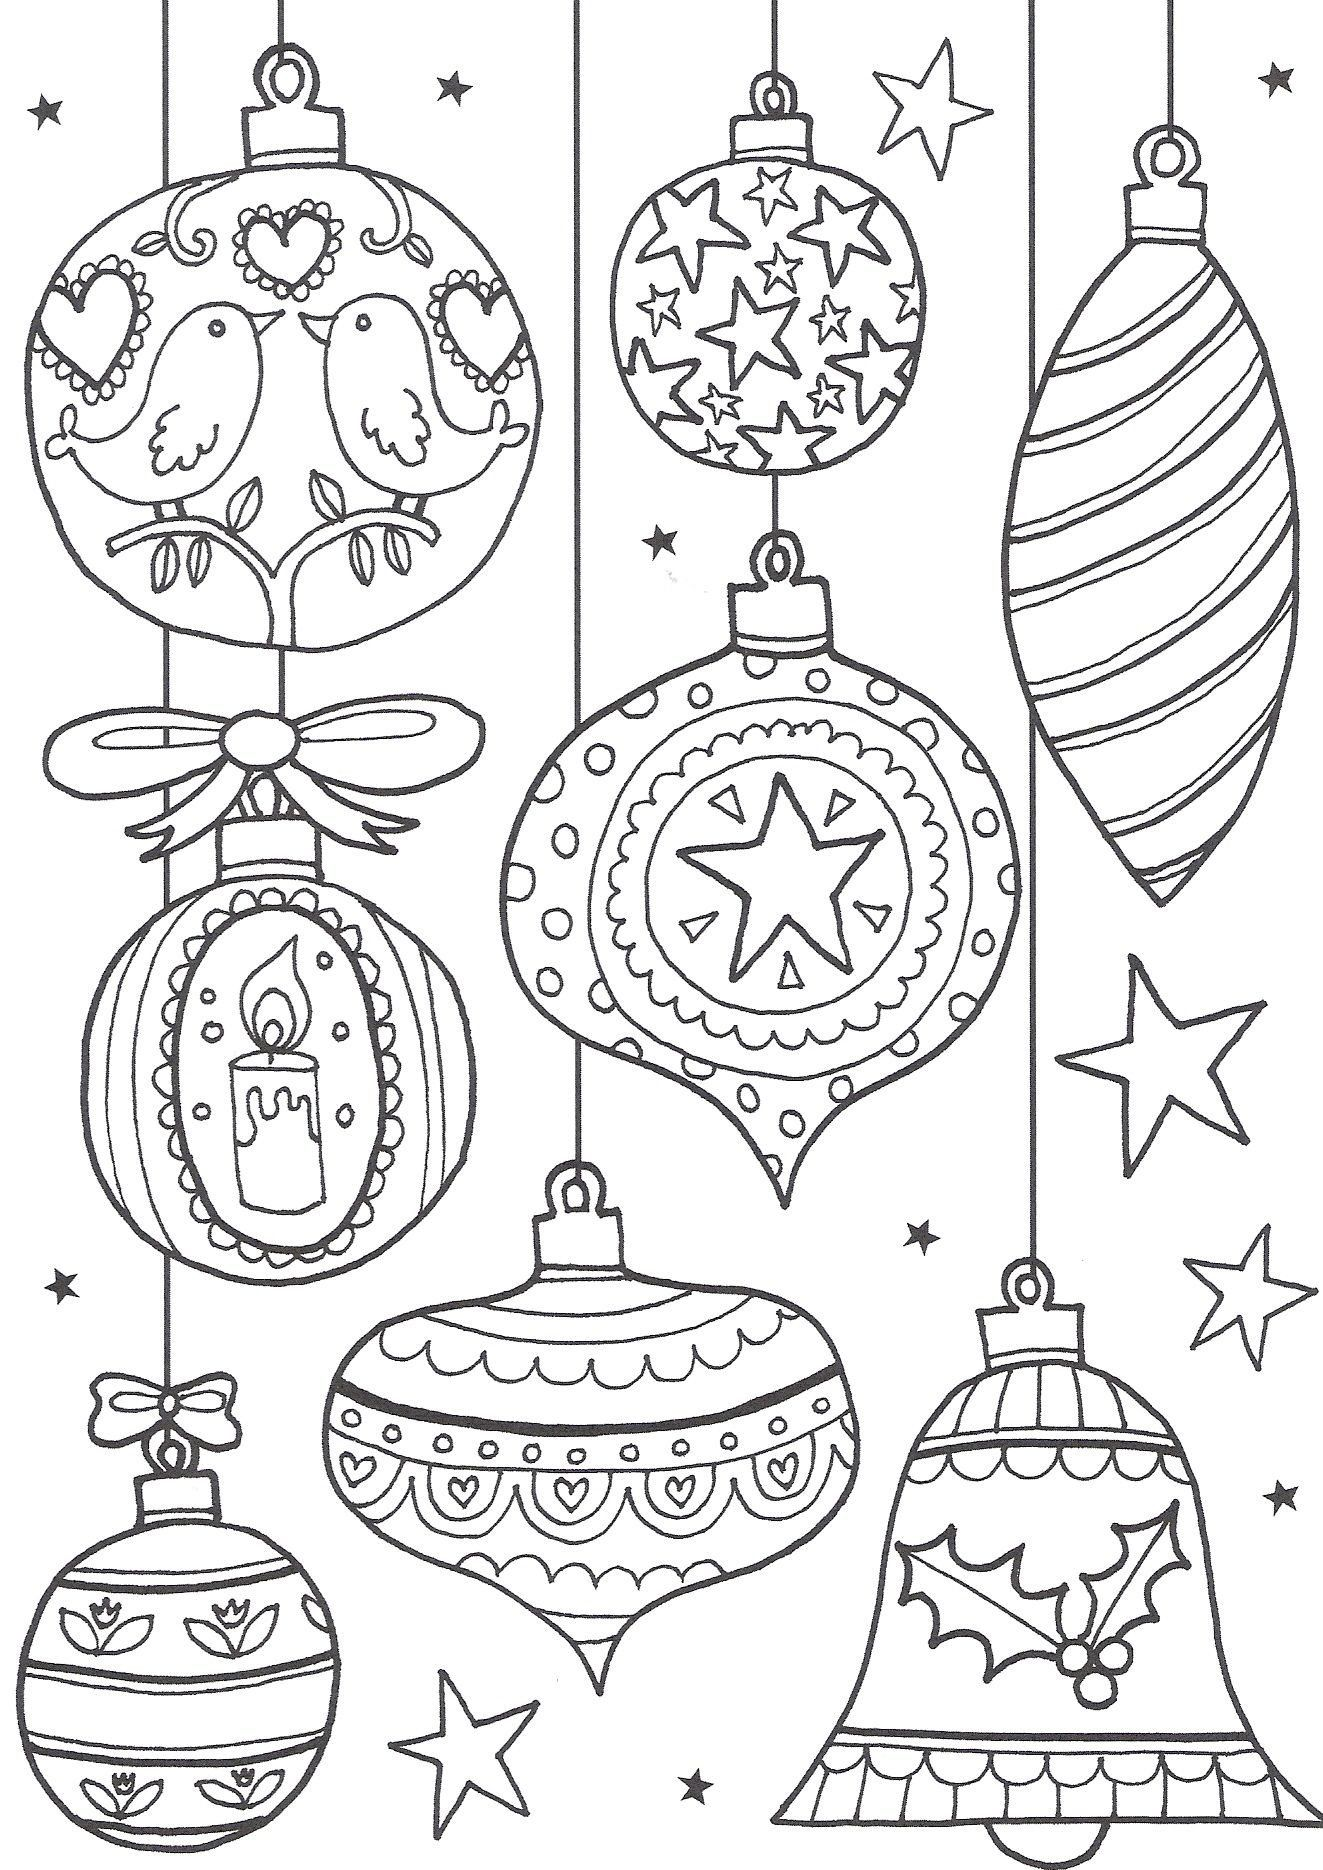 Christmas Coloring Books For Kids Free Christmas Colouring Pages Christmas Coloring Printables Printable Christmas Coloring Pages Free Christmas Coloring Pages